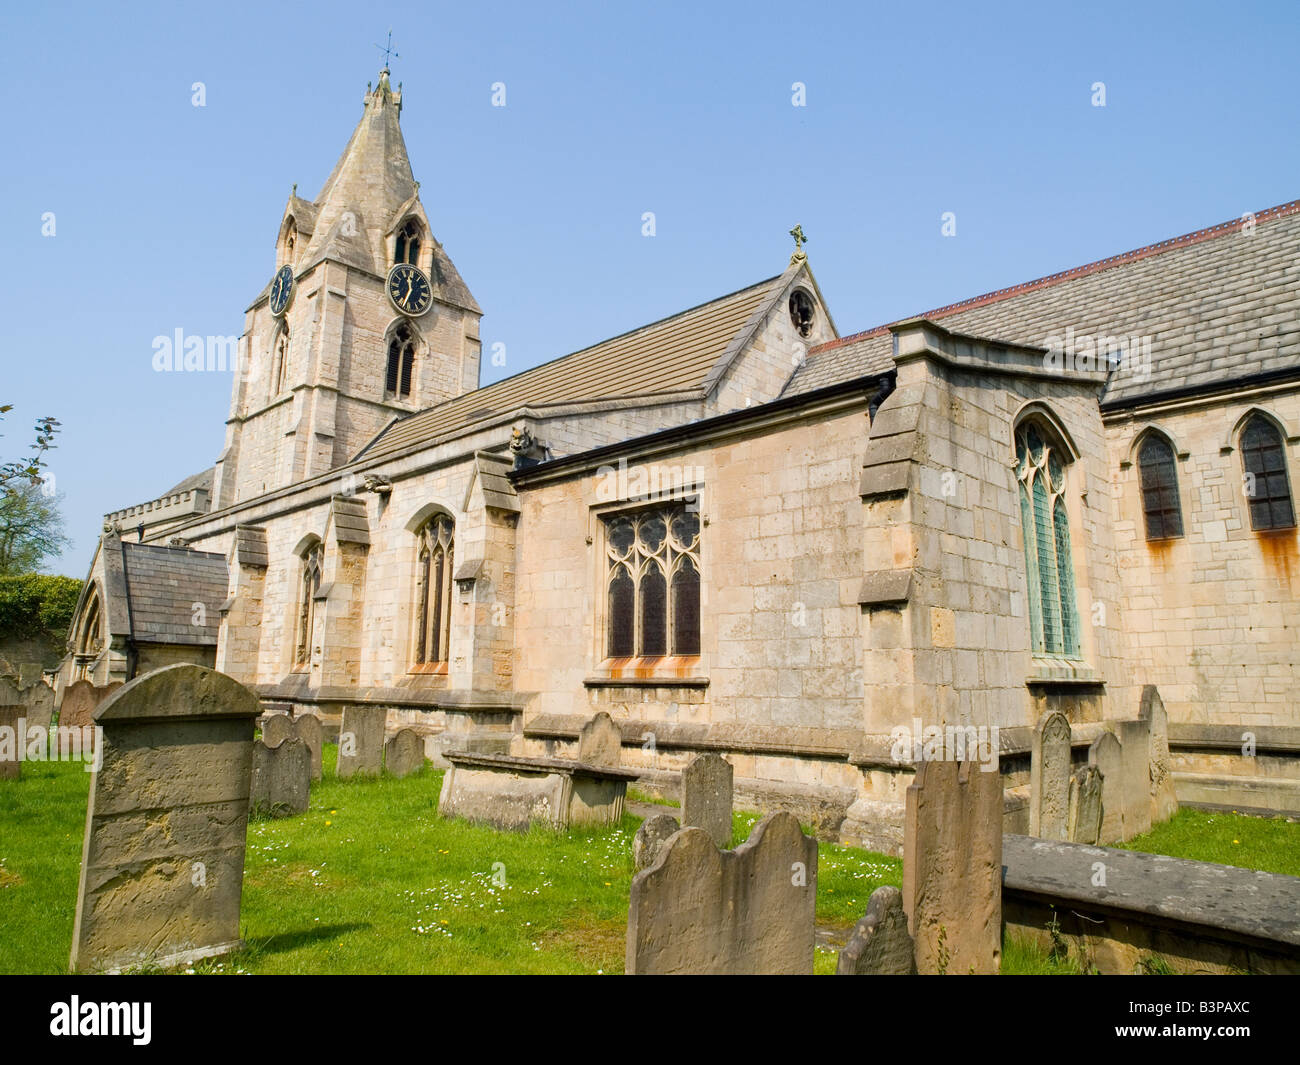 St Edmunds Parish Church In Mansfield Woodhouse Nottinghamshire England Uk Stock Image